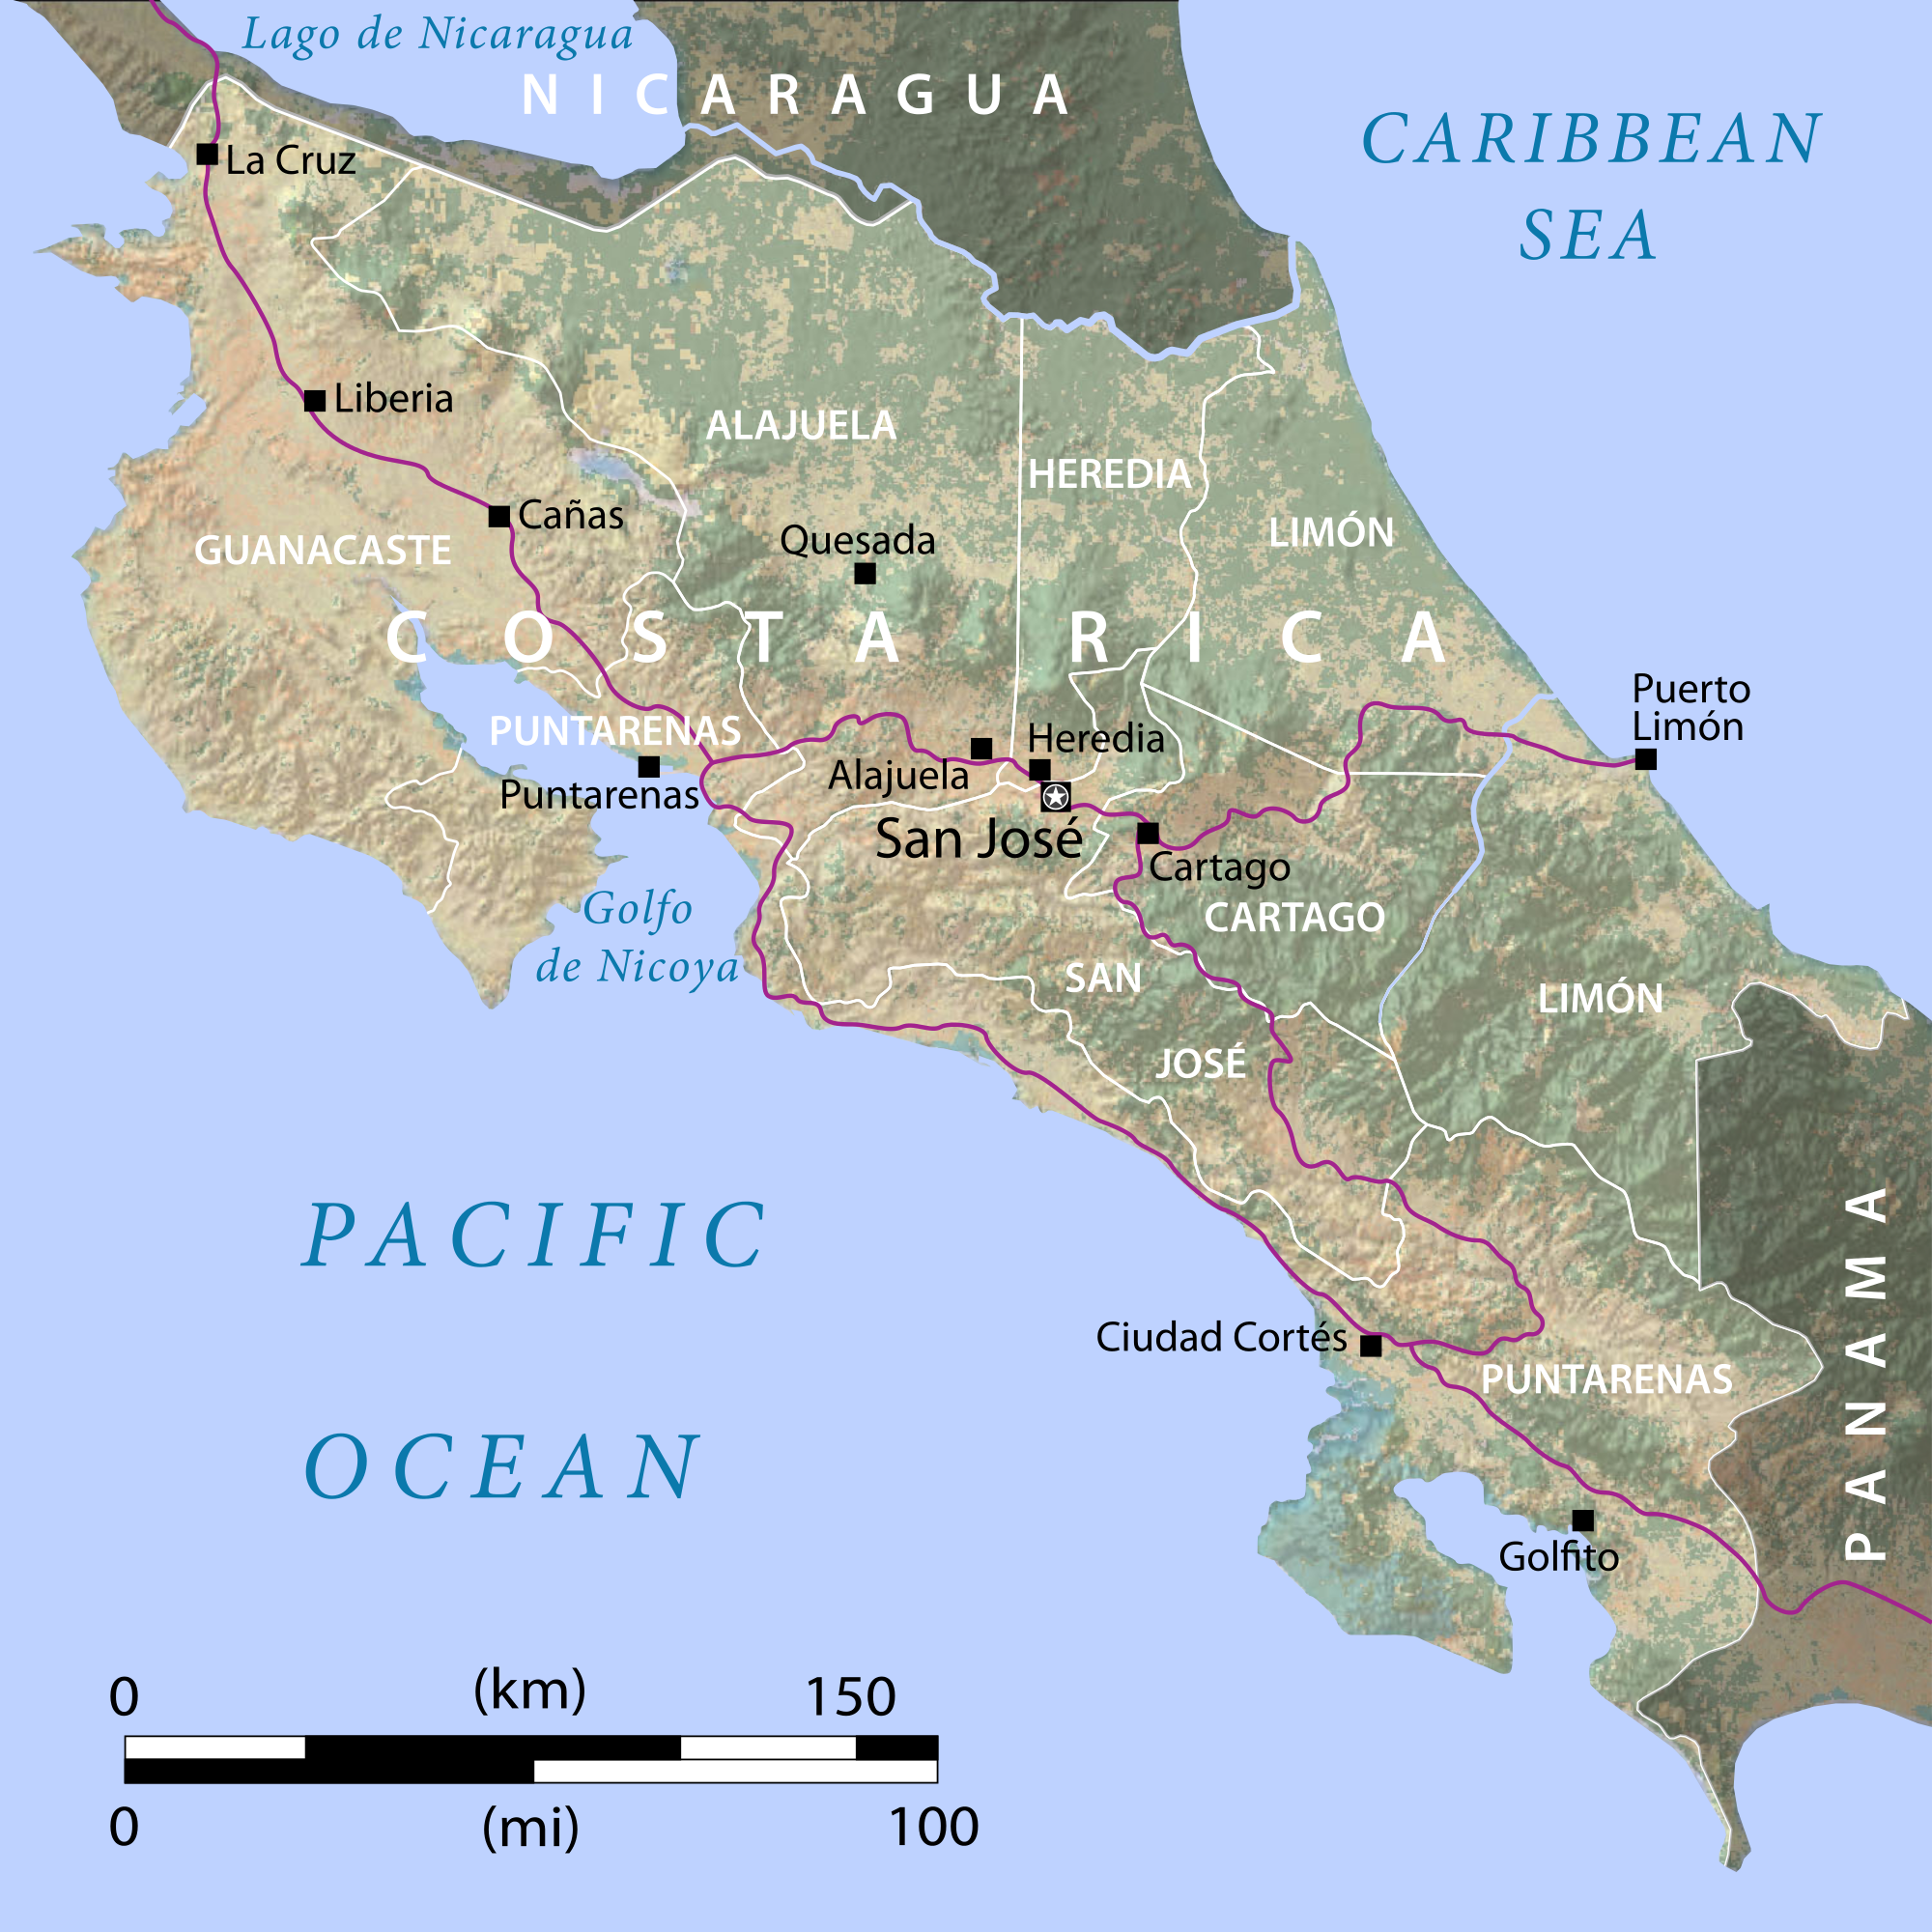 Costa rica wikipedia the free encyclopedia costa rica bound costa rica wikipedia the free encyclopedia gumiabroncs Image collections